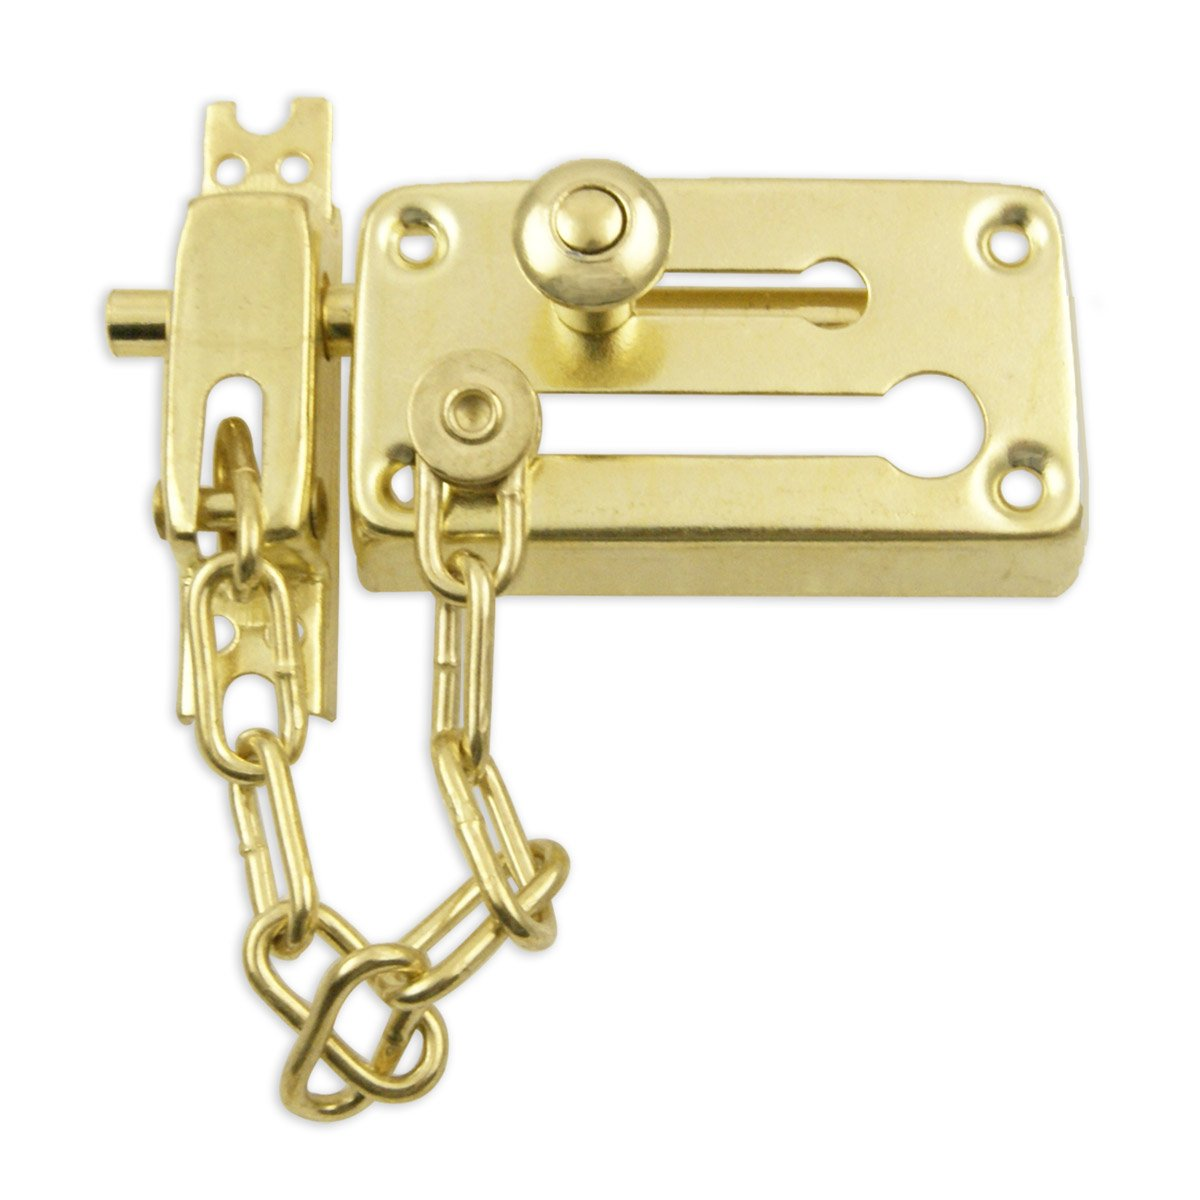 Heavy-Duty Combination Door Chain & Dead Bolt Lock Set - Chain ...